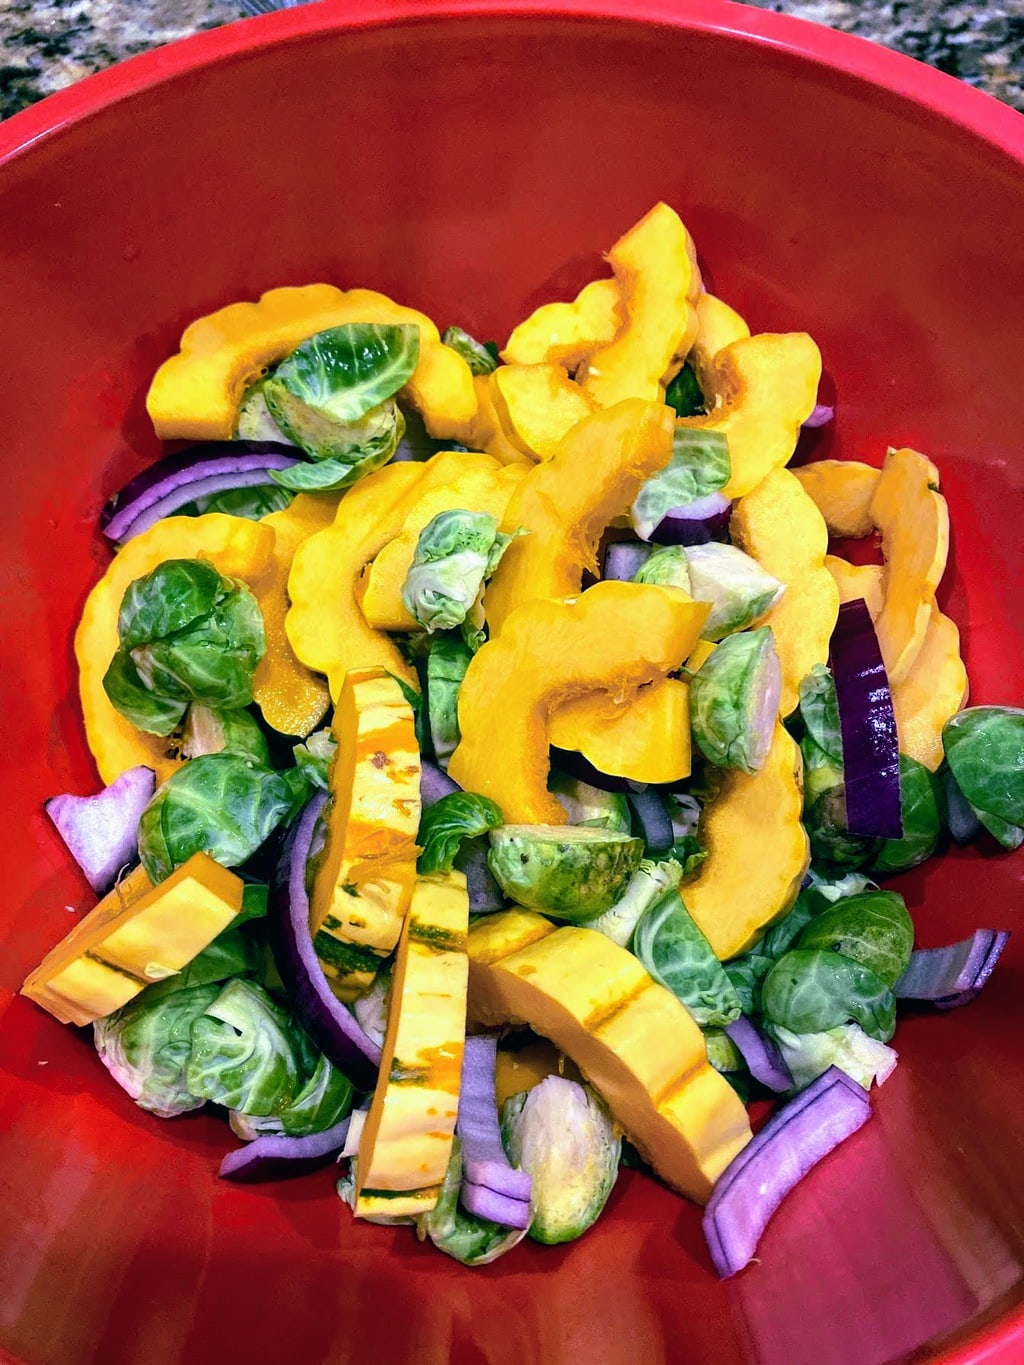 delicata squash slices, cut brussel sprouts, and sliced onion in a red bowl